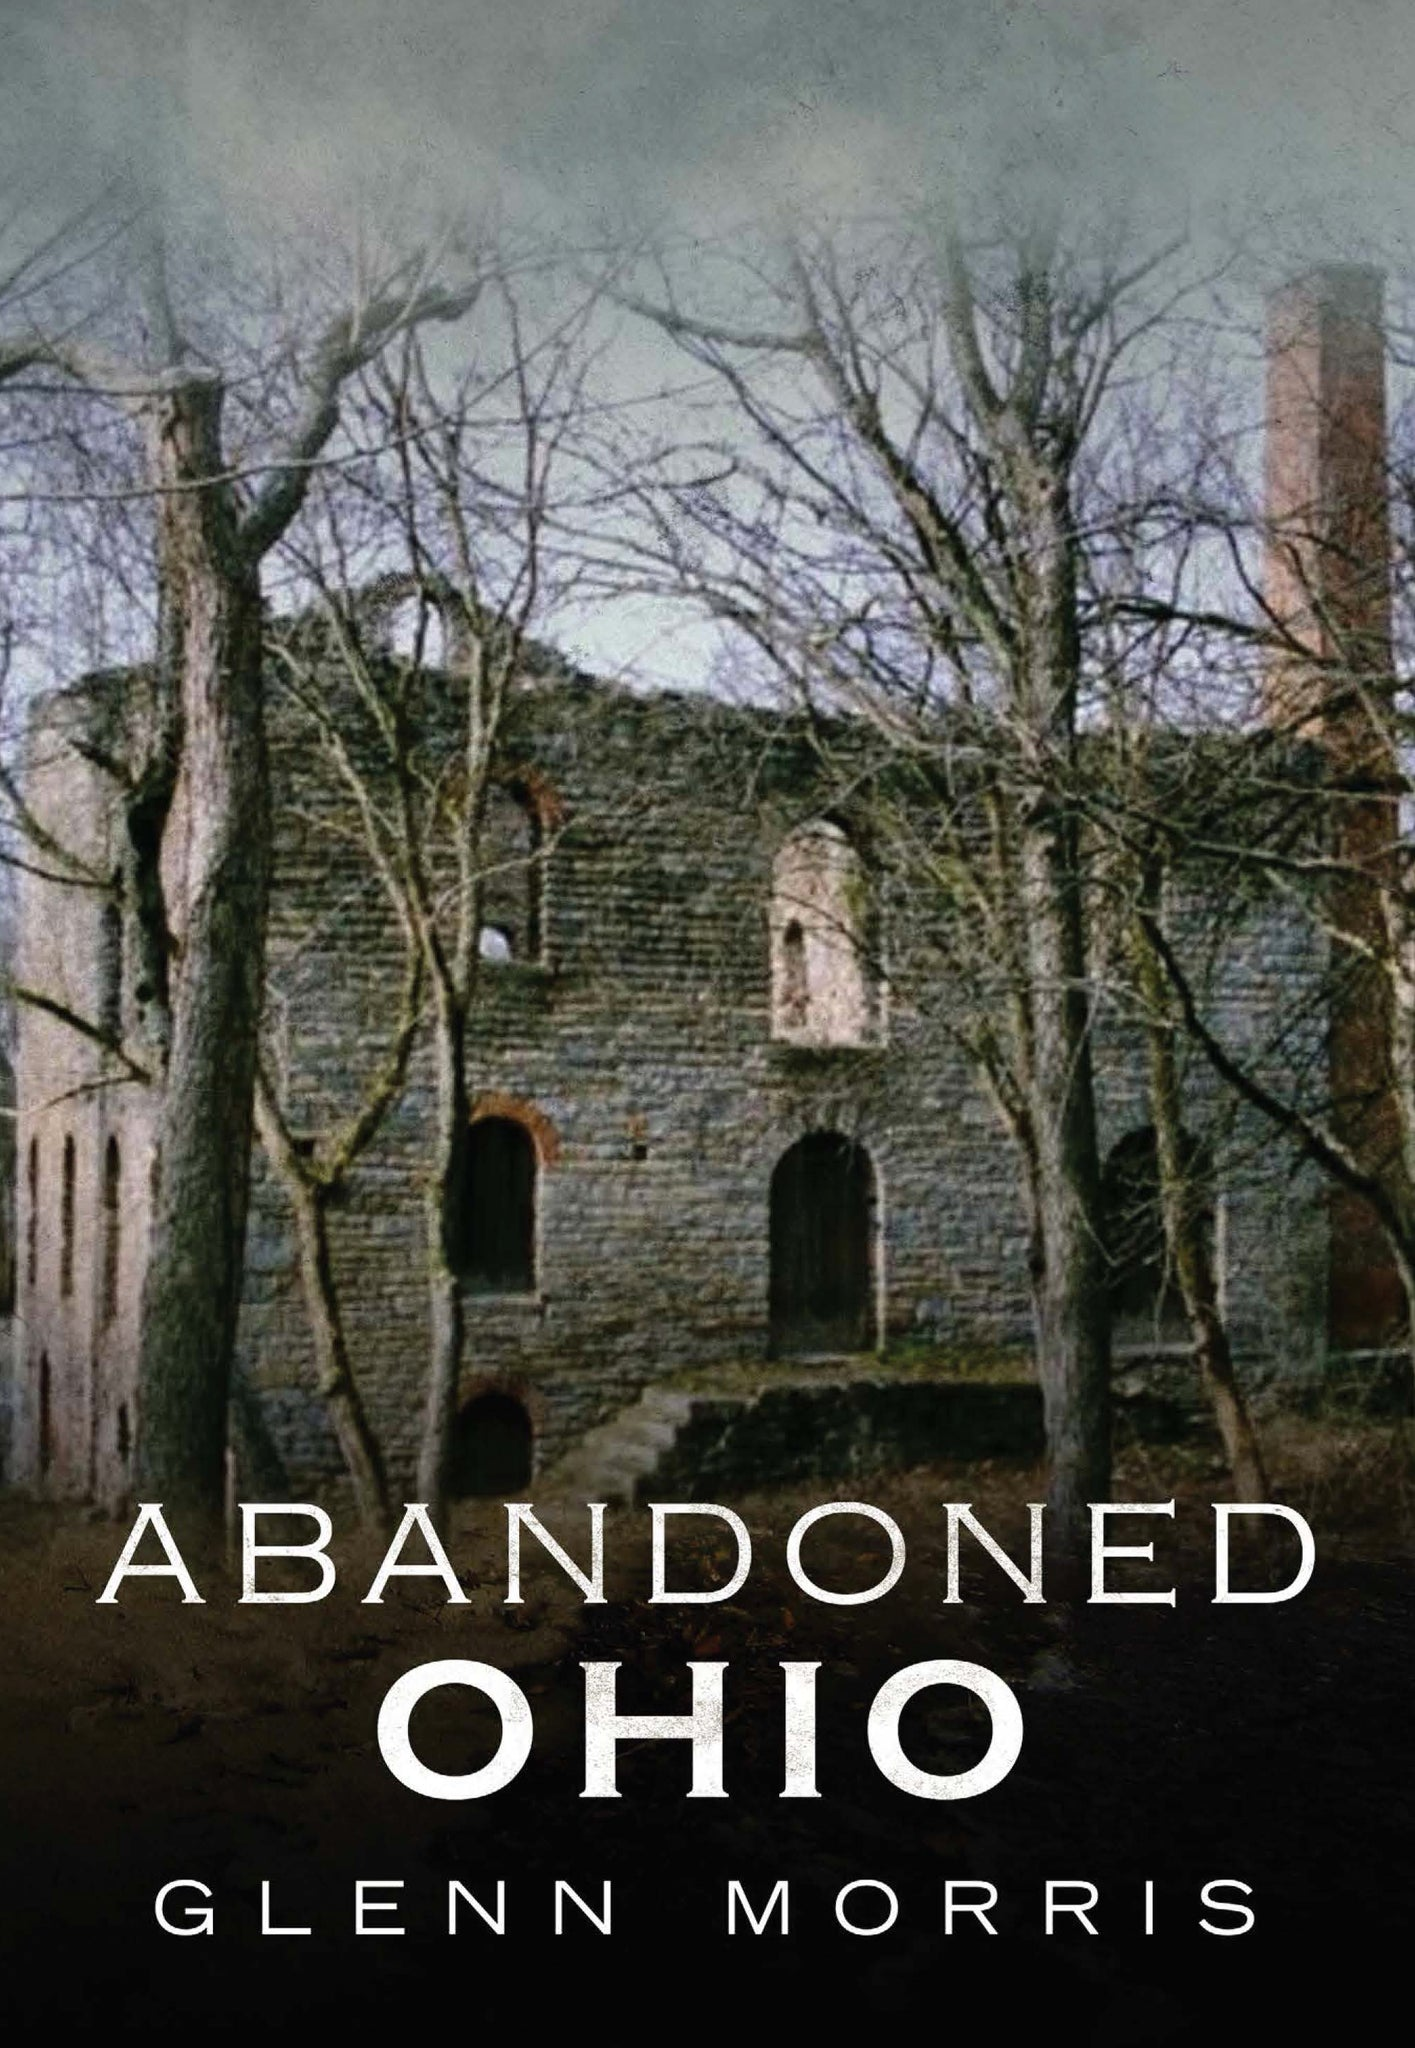 Abandoned Ohio: Ghost Towns, Cemeteries, Schools, and More